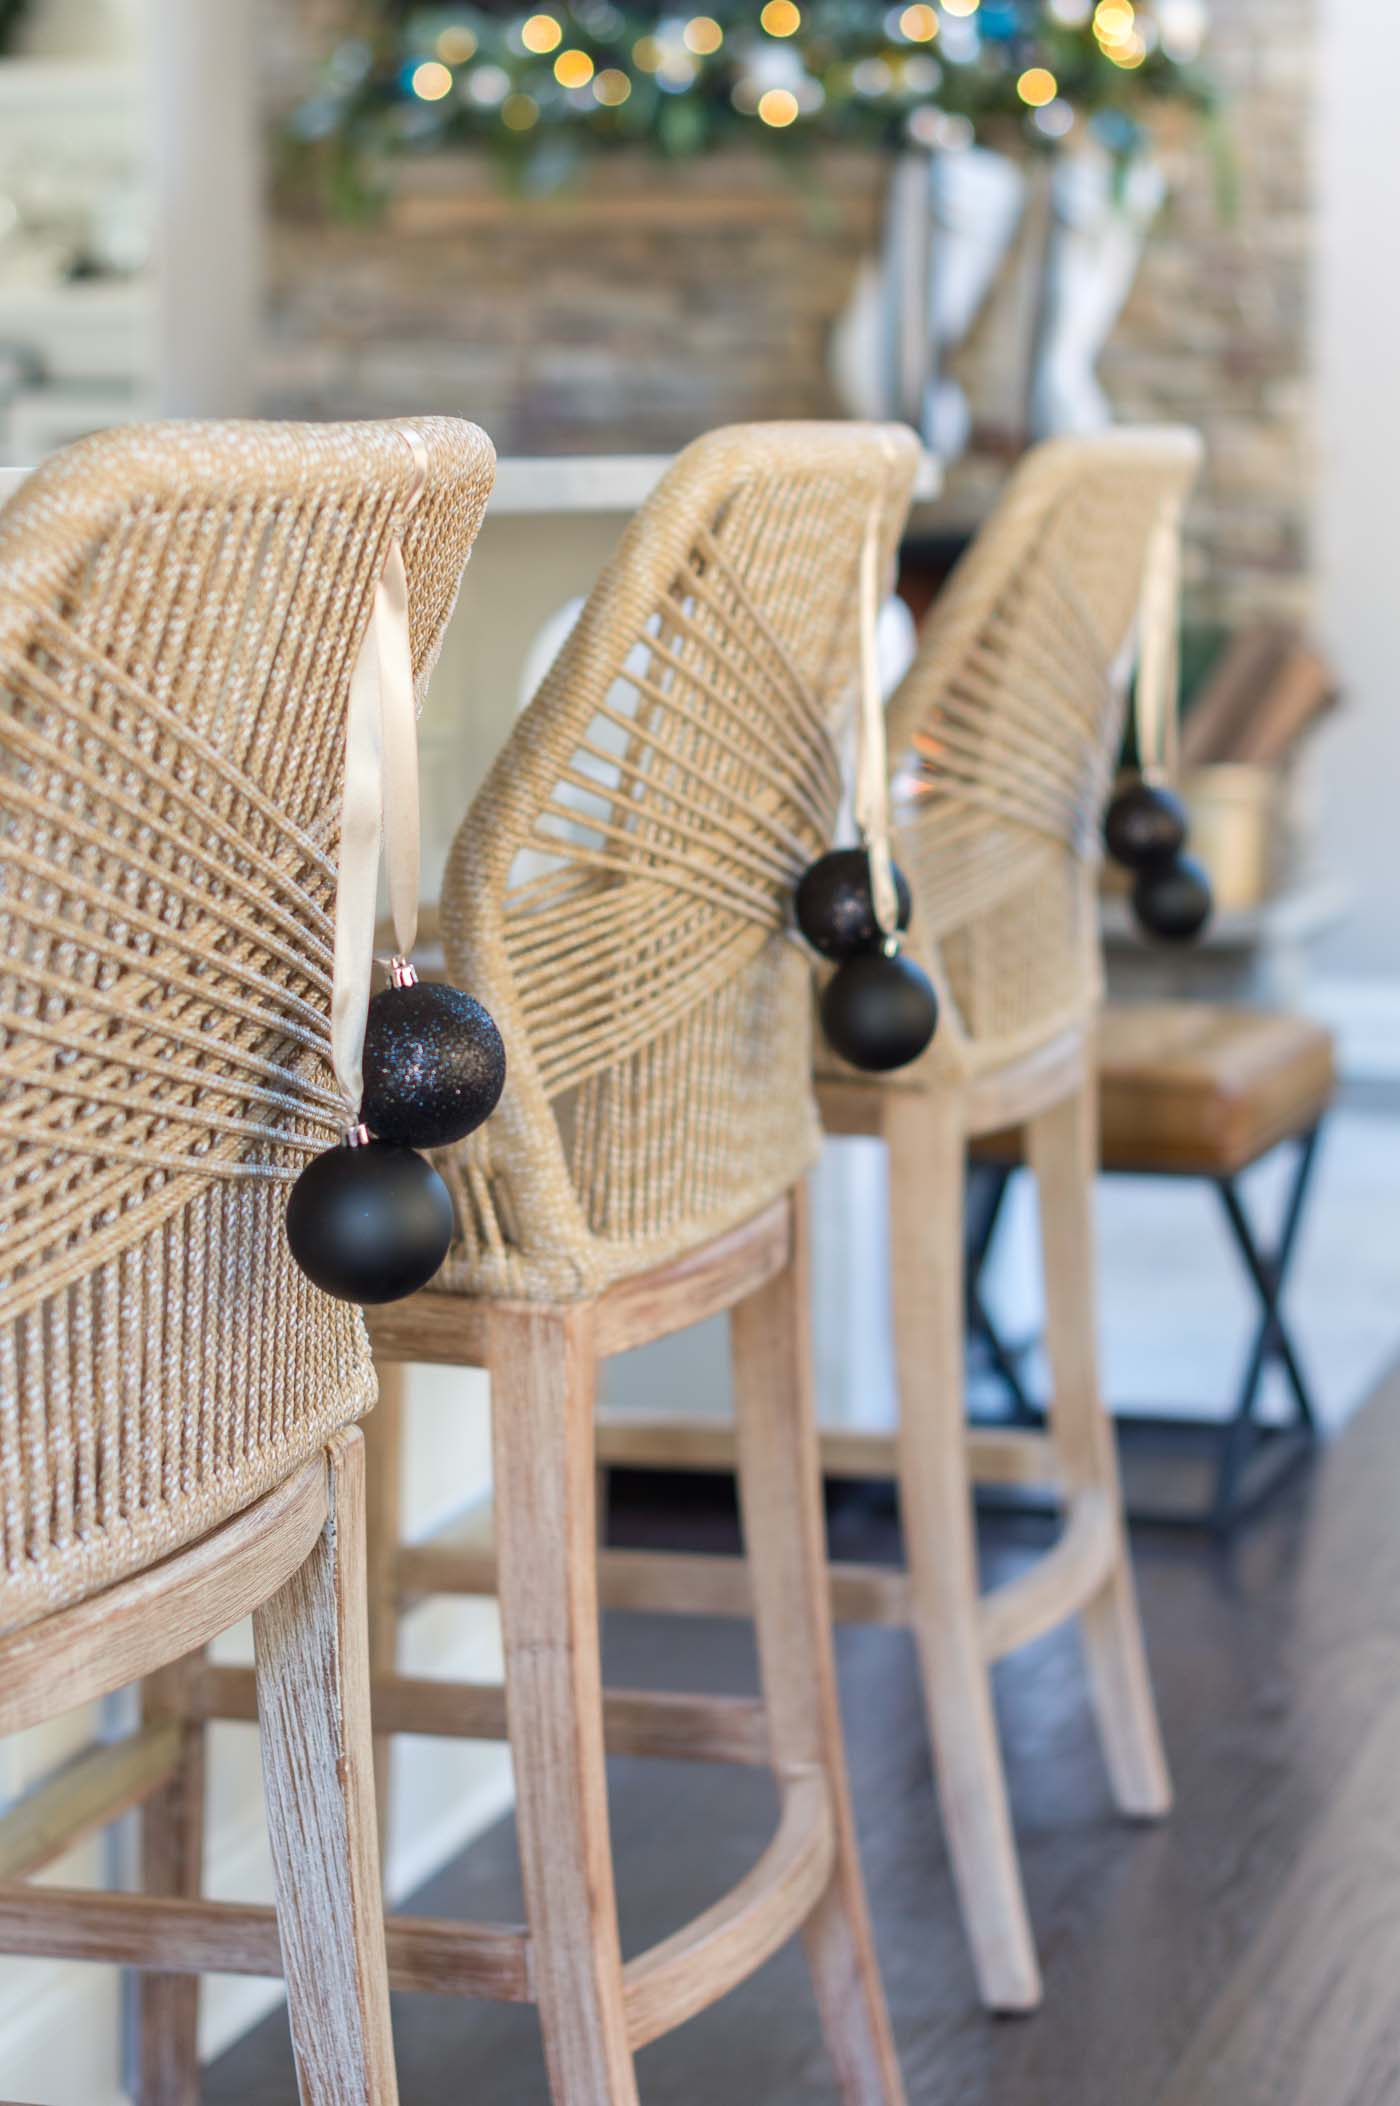 How to style and decorate the backs of bar stools for Christmas